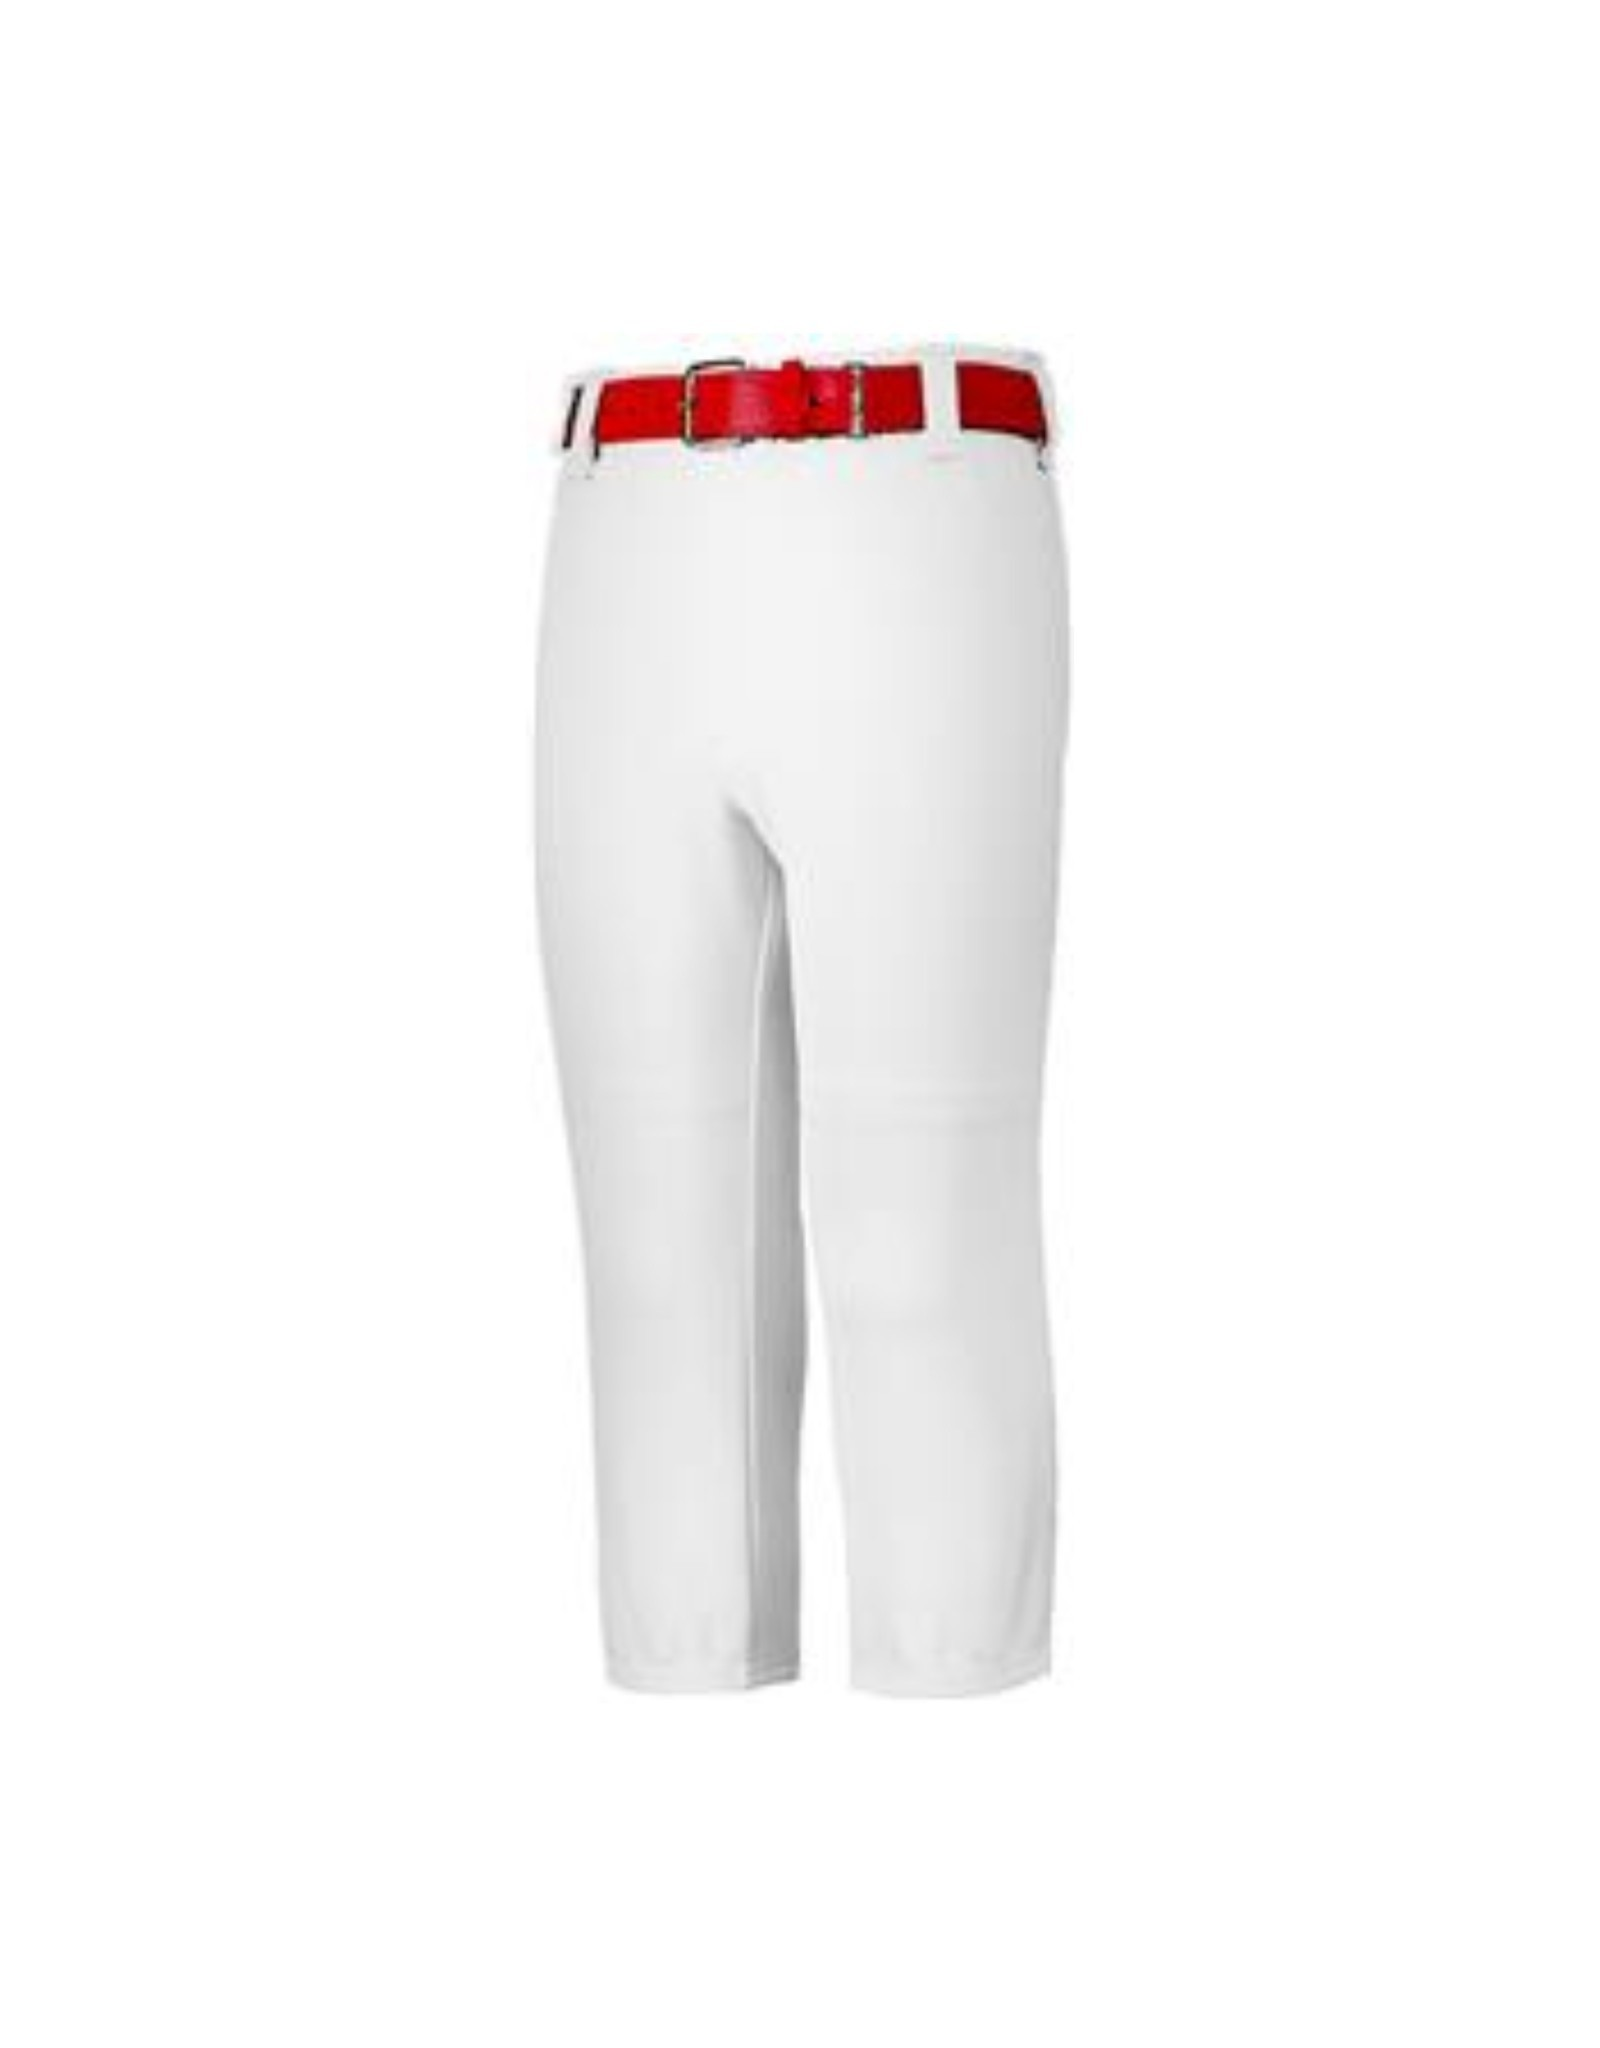 Augusta Adult Pull-Up Baseball Pants w/Loops (White)